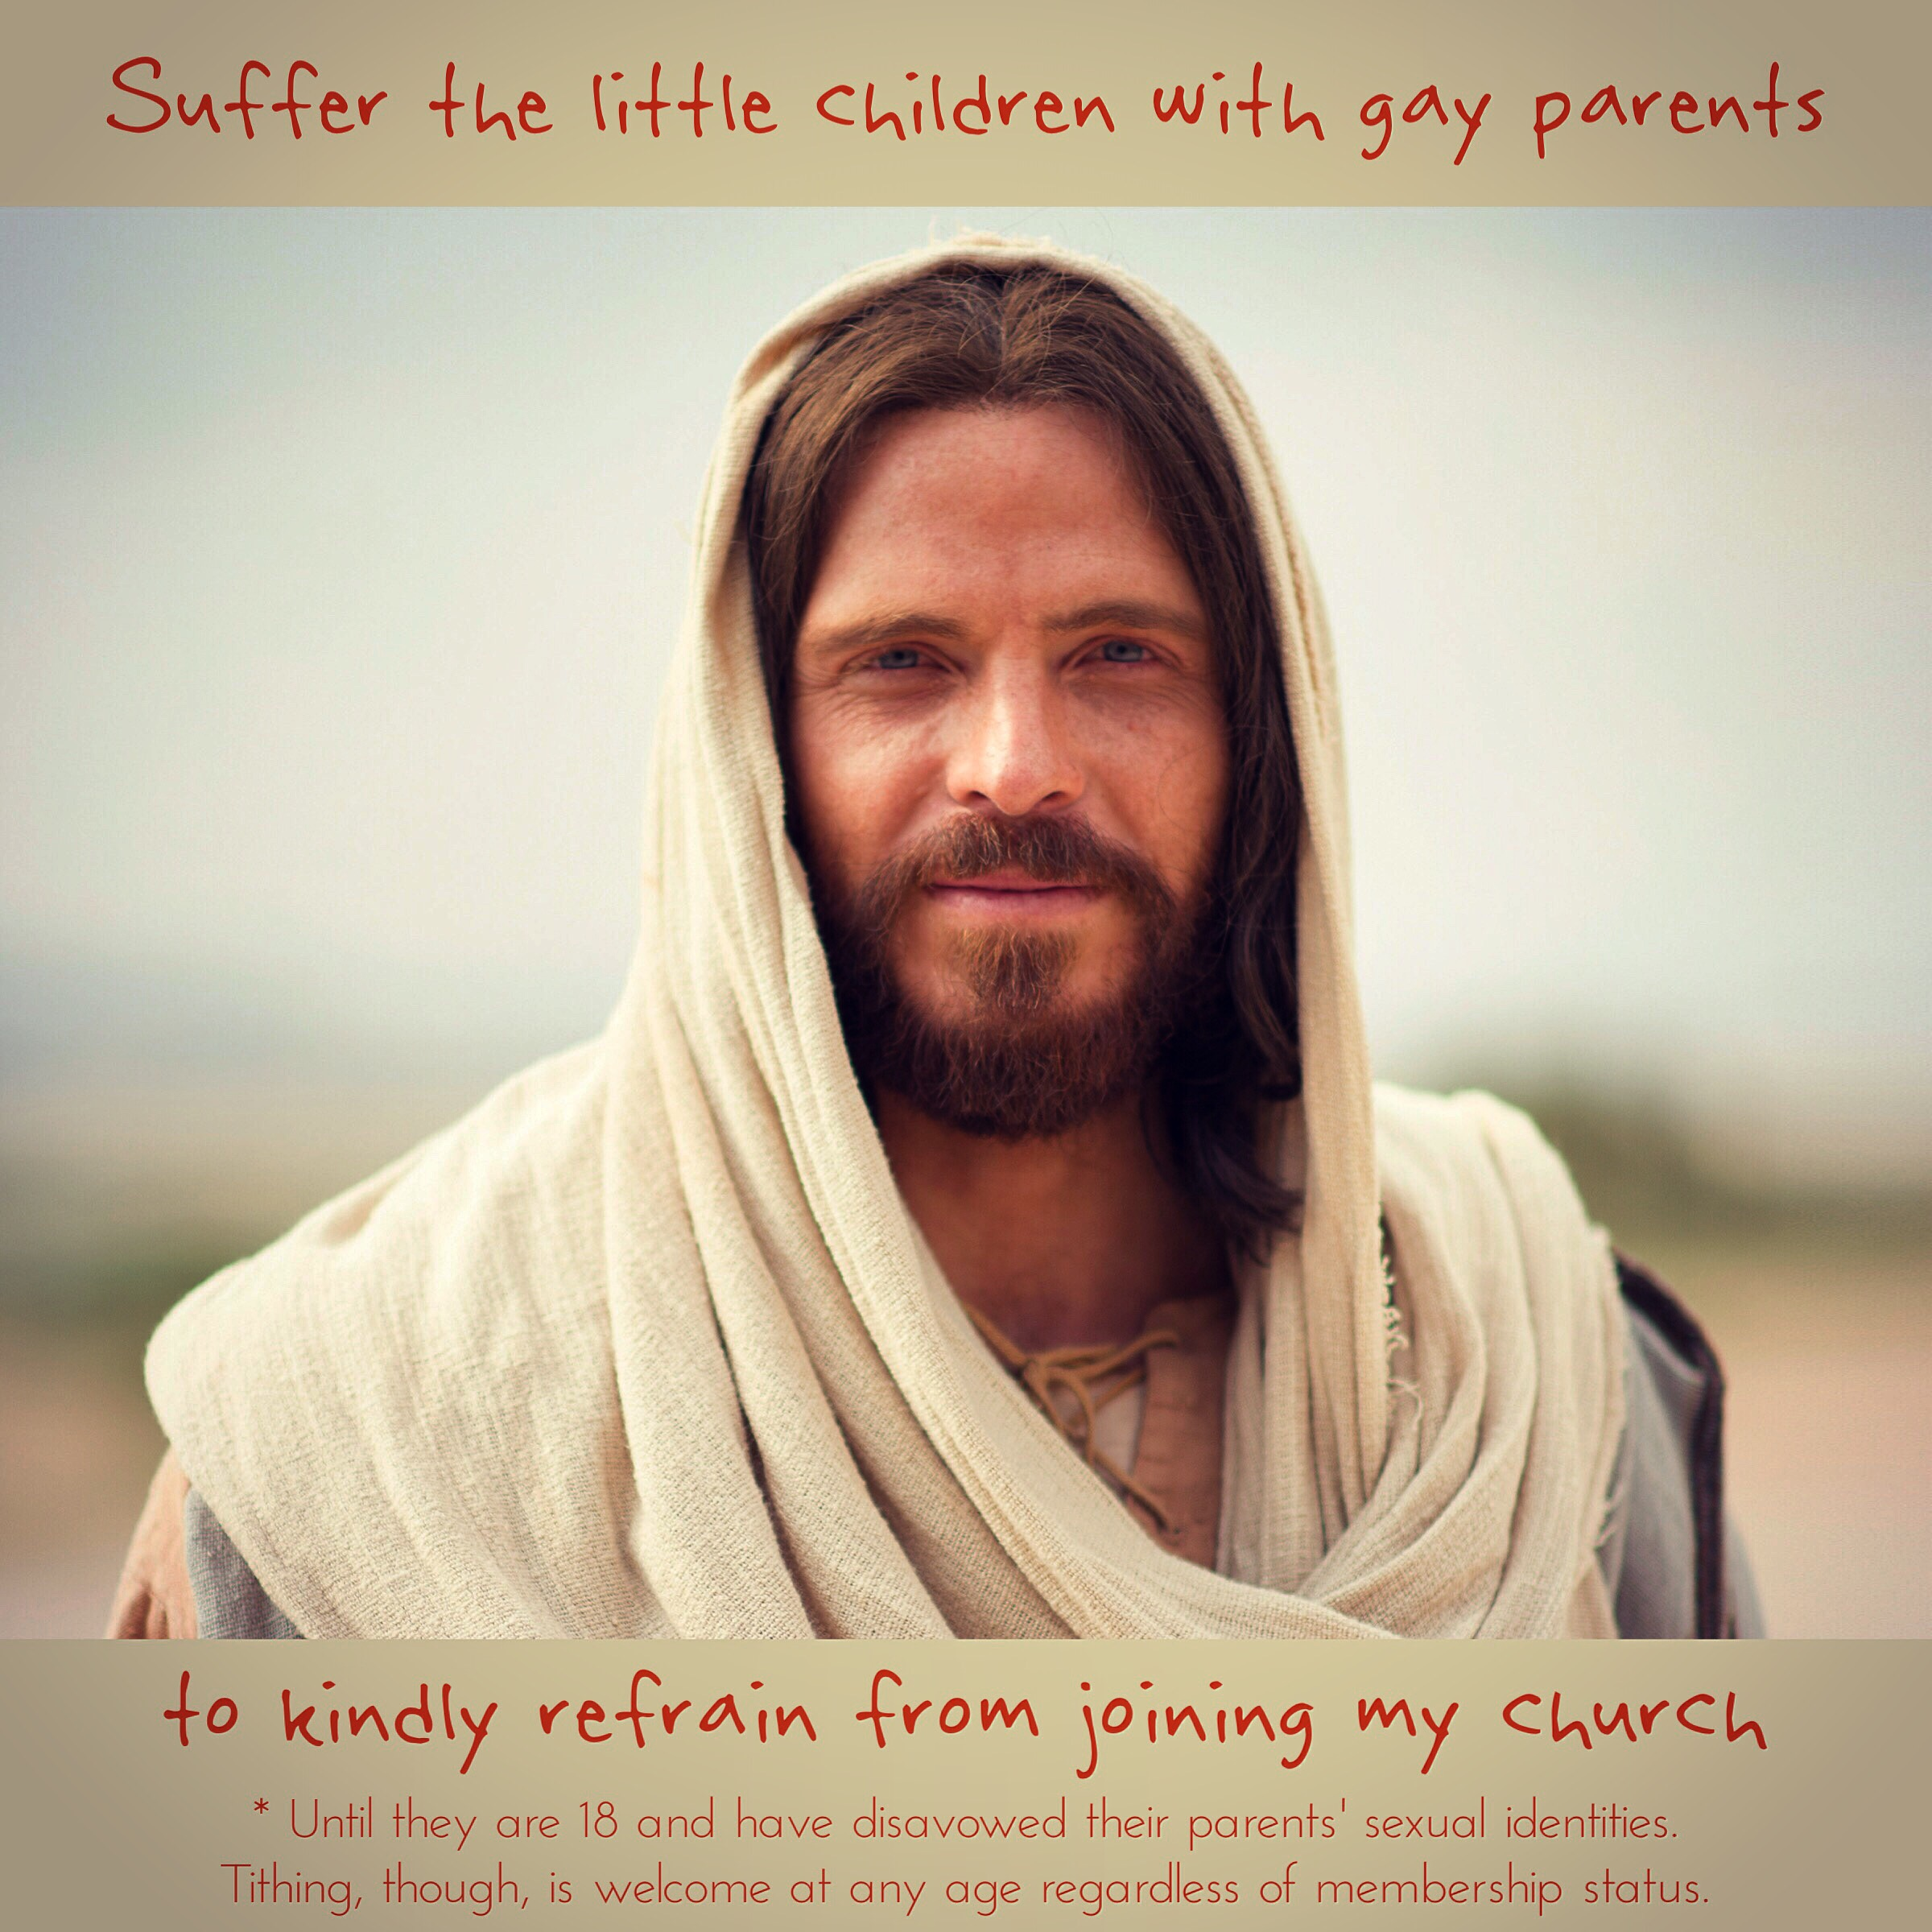 Suffer little children to stay away